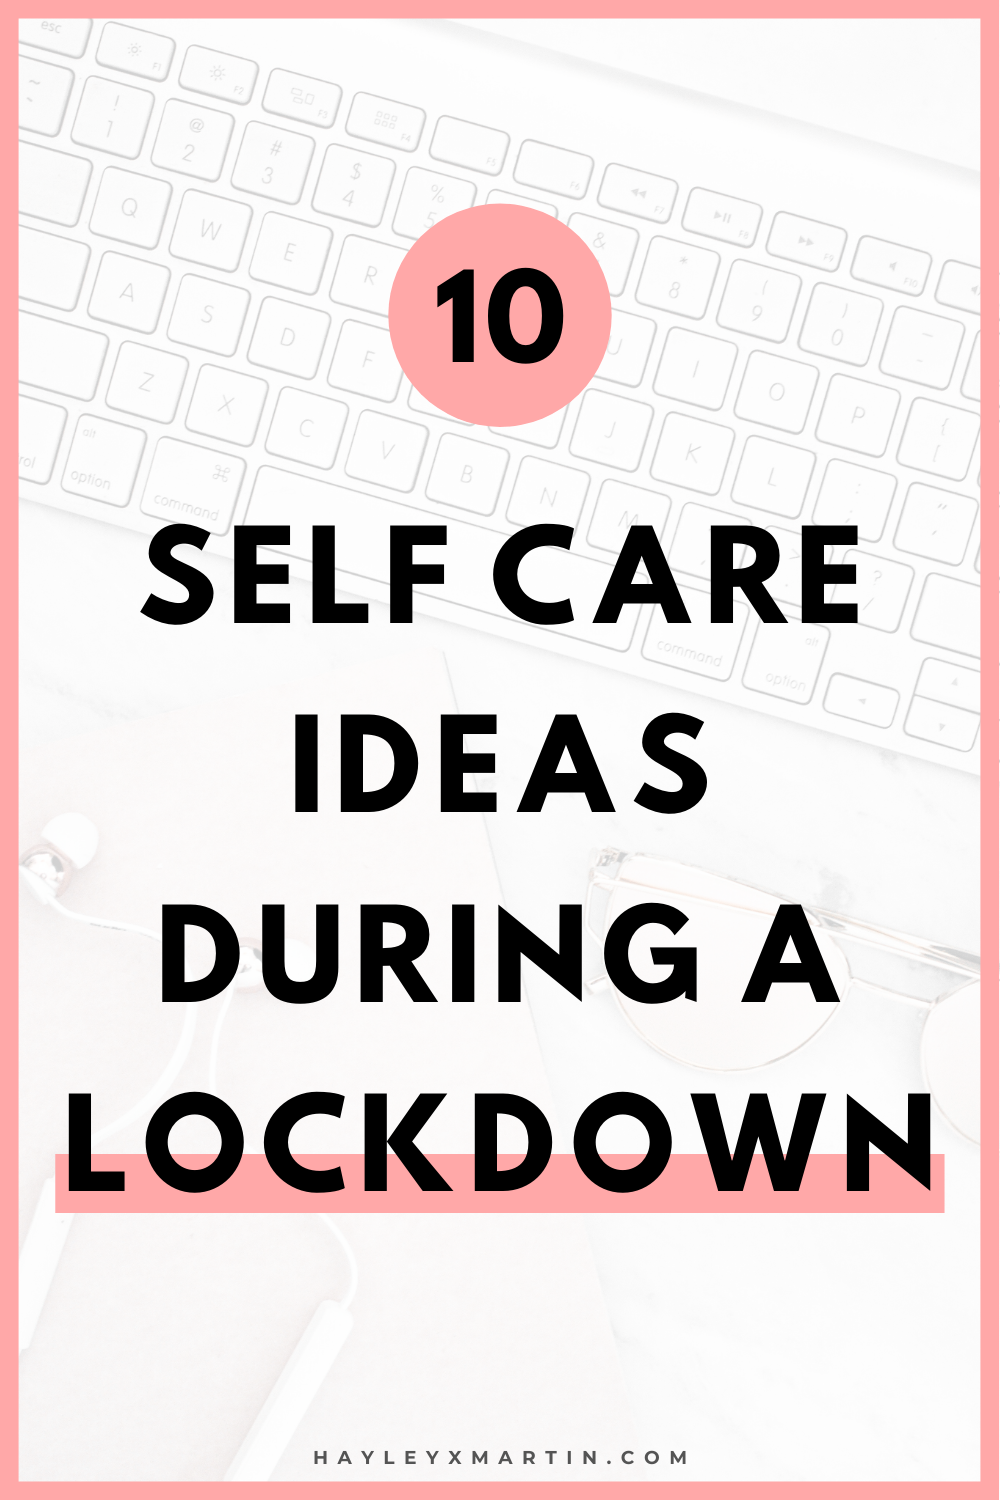 10 SELF CARE IDEAS DURING A LOCKDOWN | HAYLEYXMARTIN